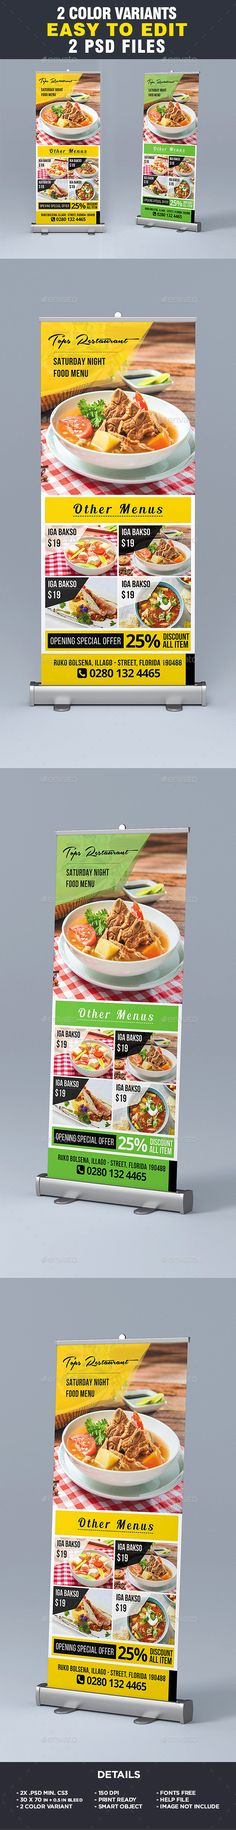 Restaurant Menu - Food Menu Roll-Up Banner by ivanjoys19 All elements beside the image are fully editable CMYK – print ready30x70 in   0.5 in. bleedFiles included:- 2 x PSD Files(CS3)-